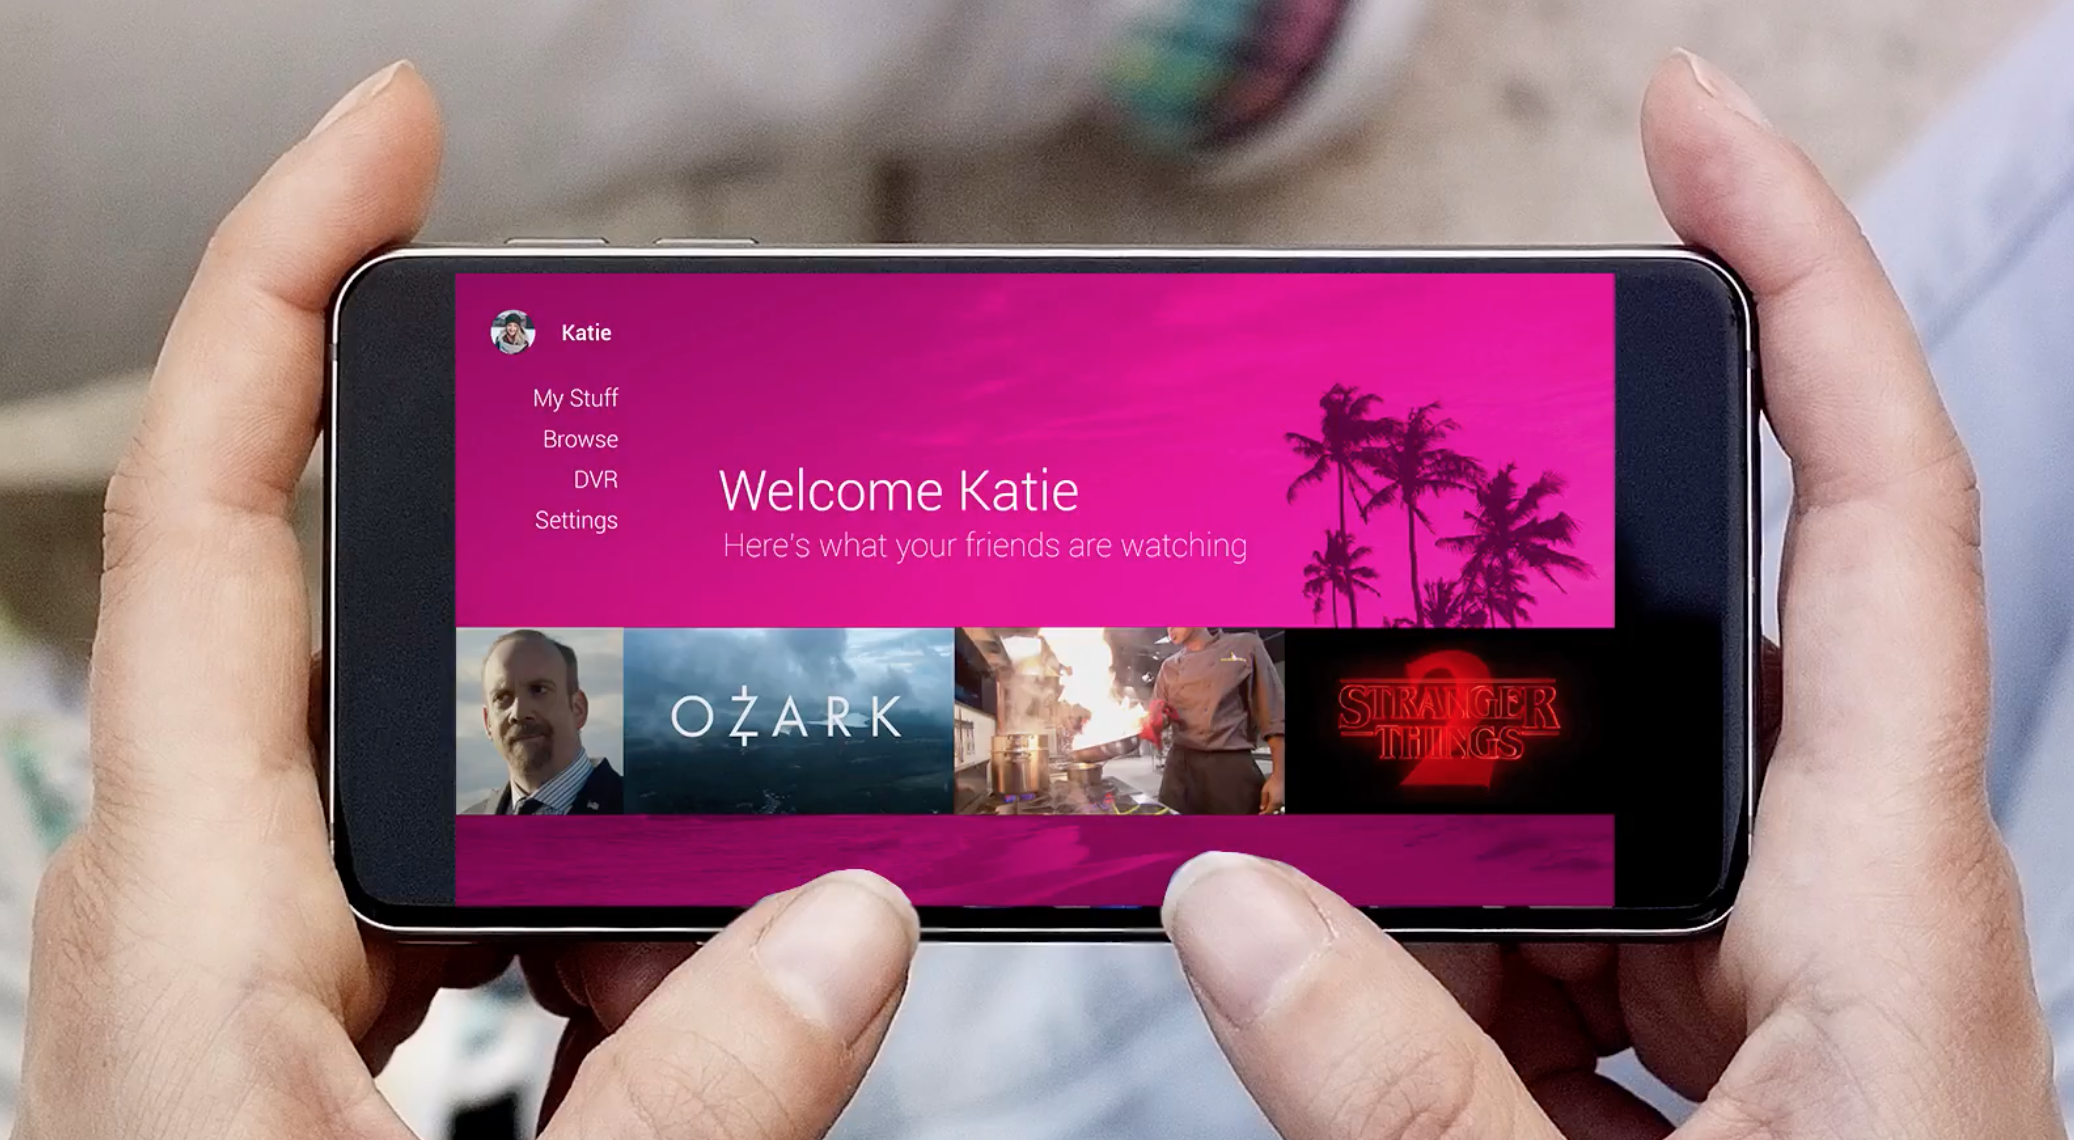 Mobile plans to disrupt TV with their own service